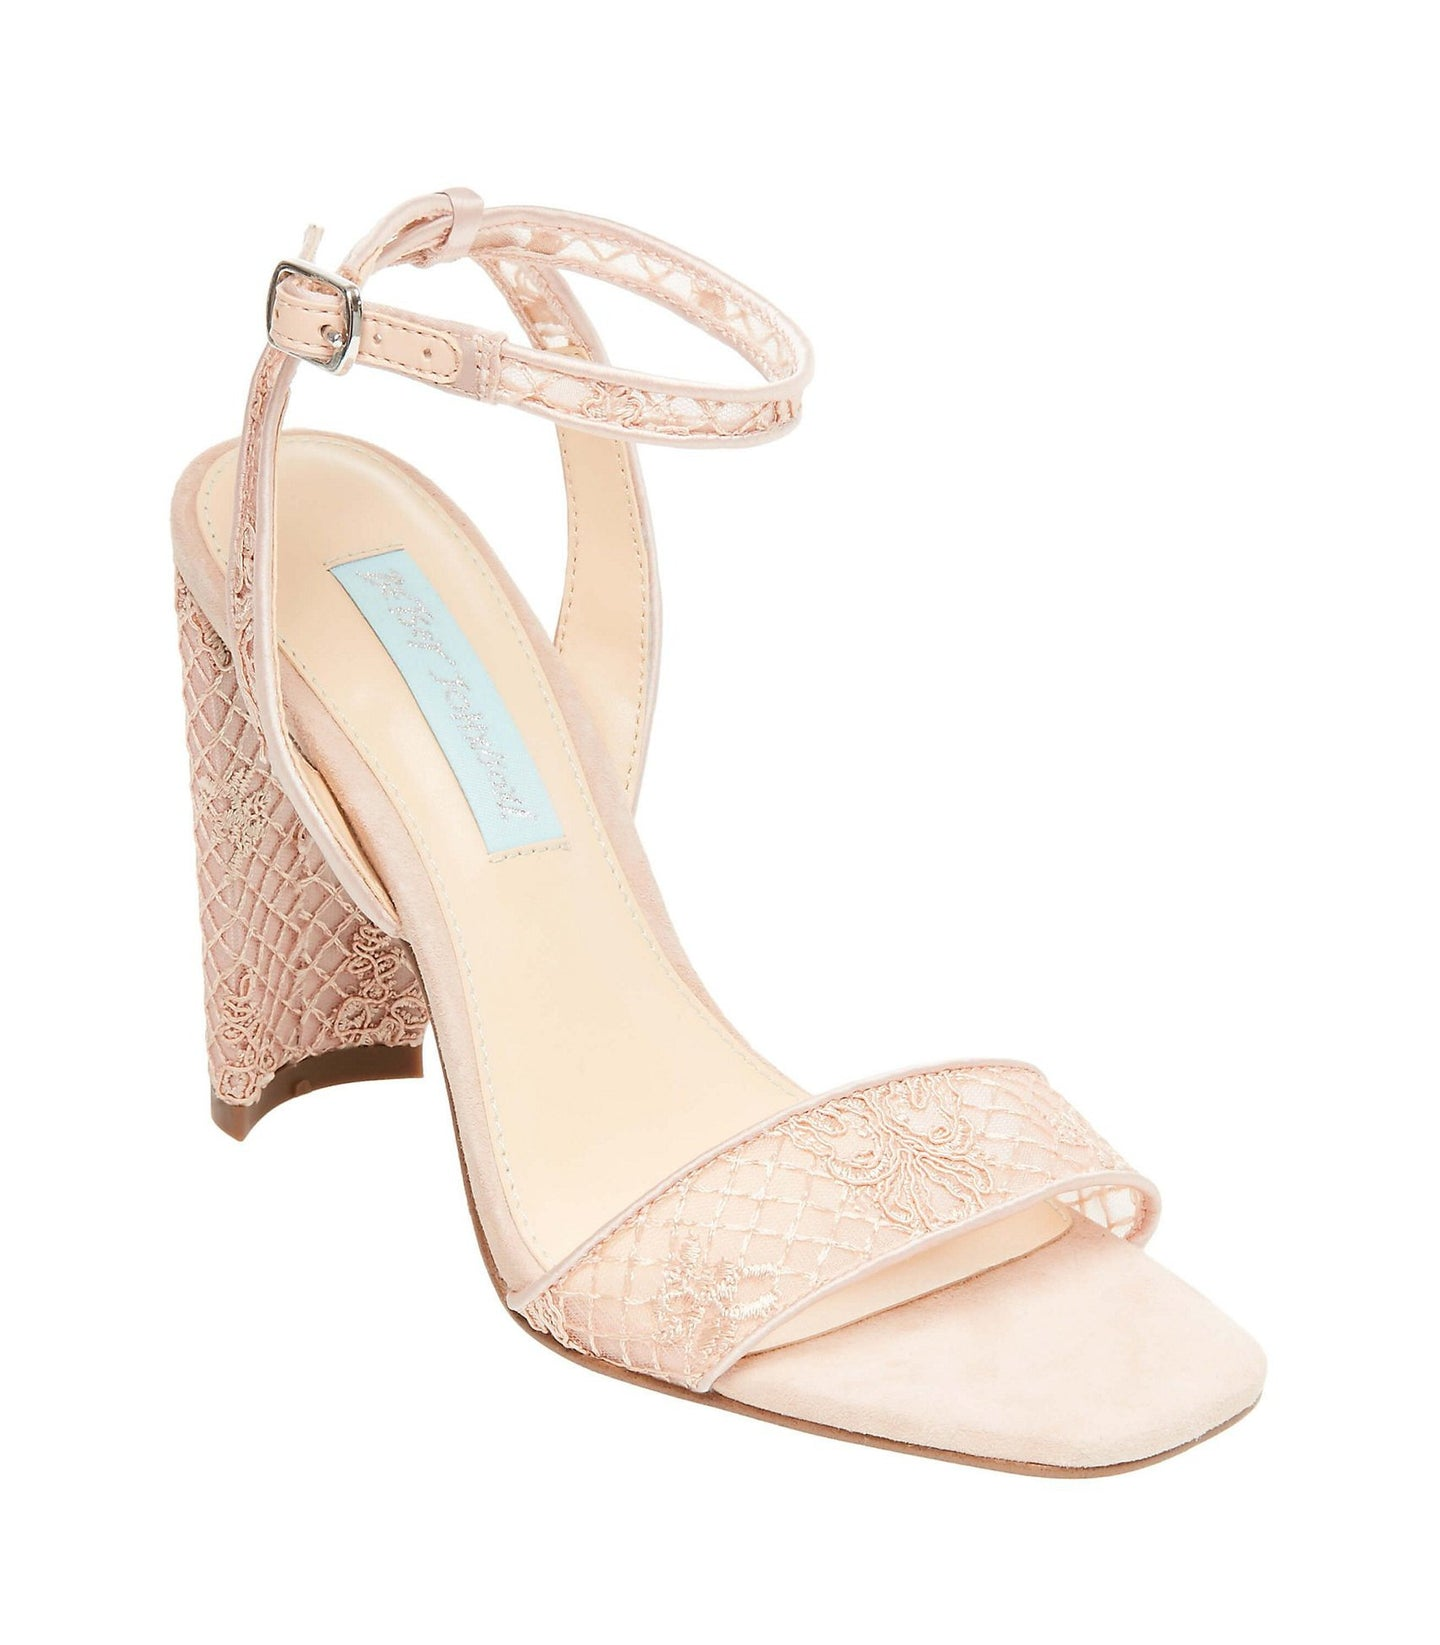 SB-KANI NUDE - SHOES - Betsey Johnson